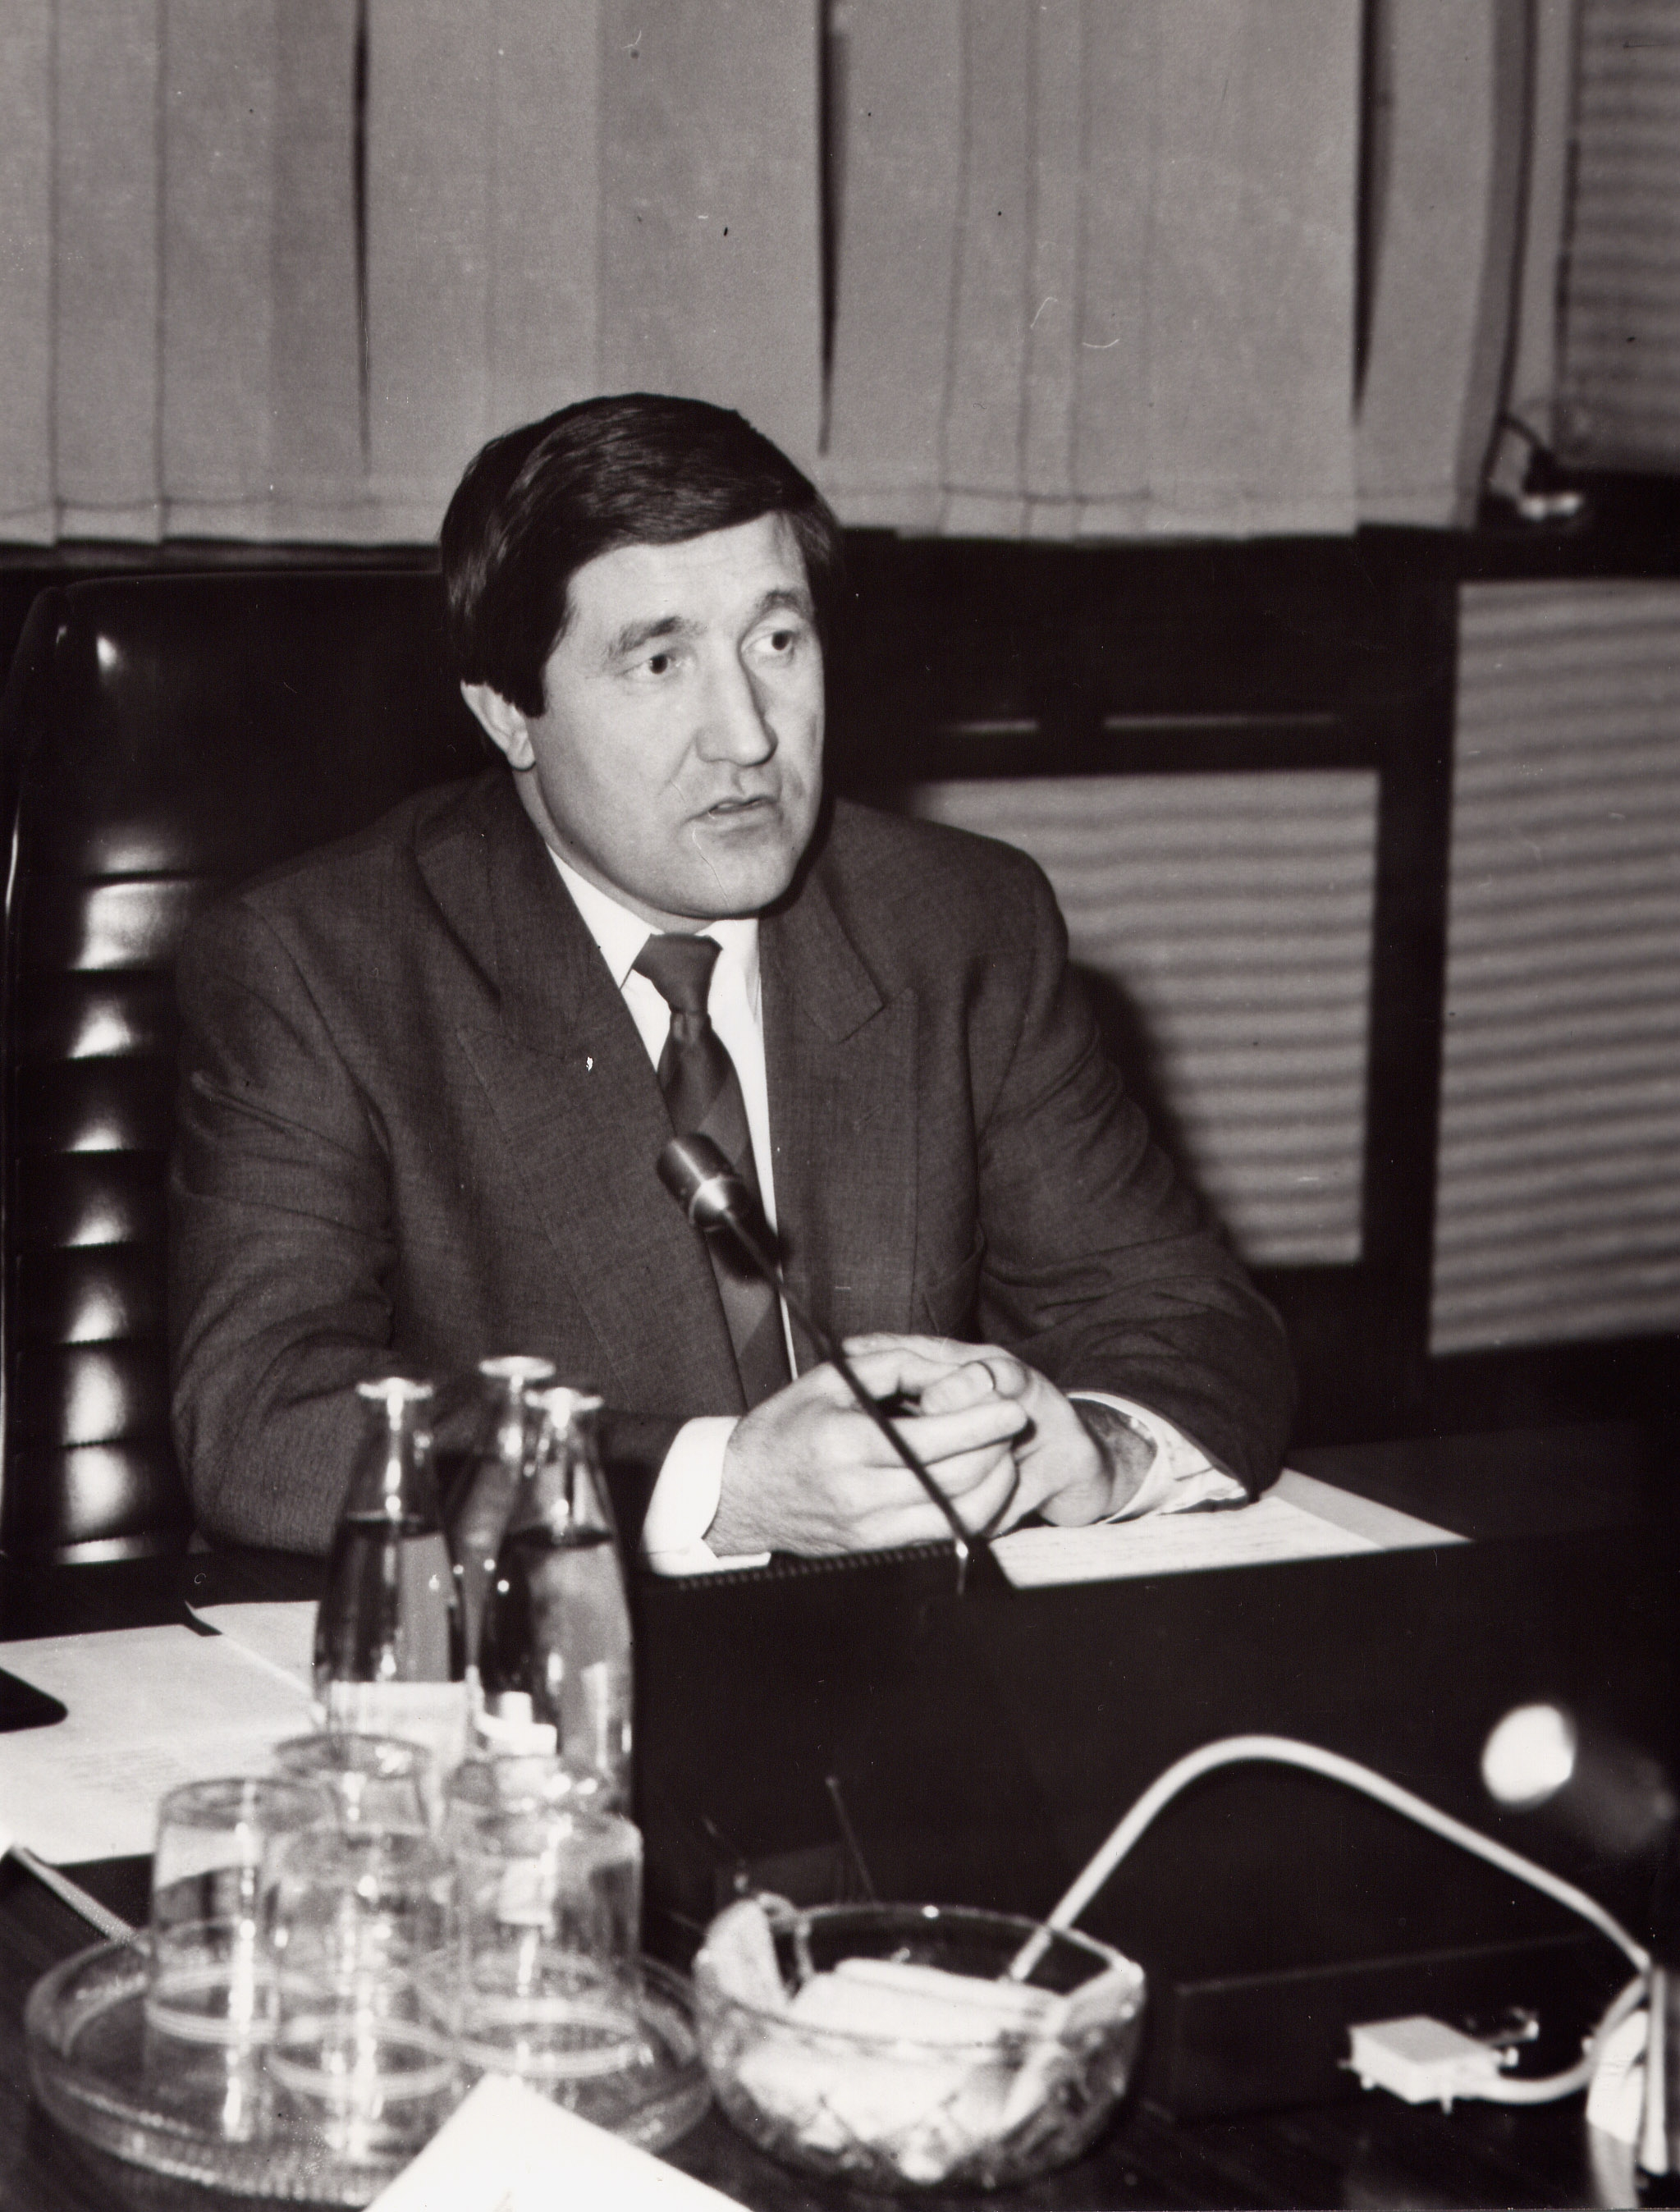 Minister of Fuel and Energy; 1993. Yuri Shafranik Konstantinovich